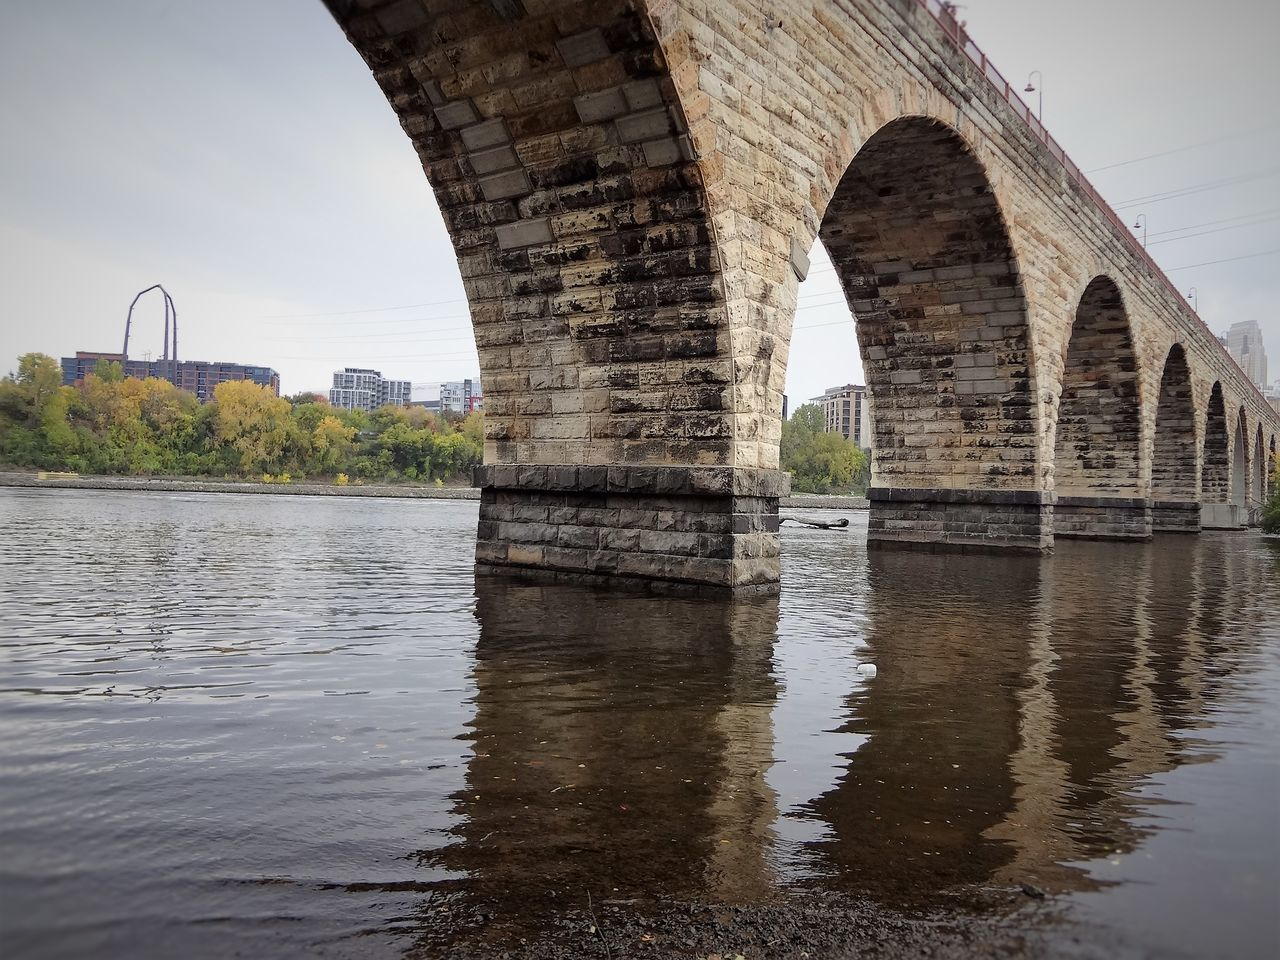 St. Anthony Main trails in Minneapolis MN Arch Architecture Bridge Bridge - Man Made Structure Built Structure Connection Day Nature No People Outdoors Reflection River Sky Stone Tabphotography Travel Destinations Tree Water Water Reflections Waterfront